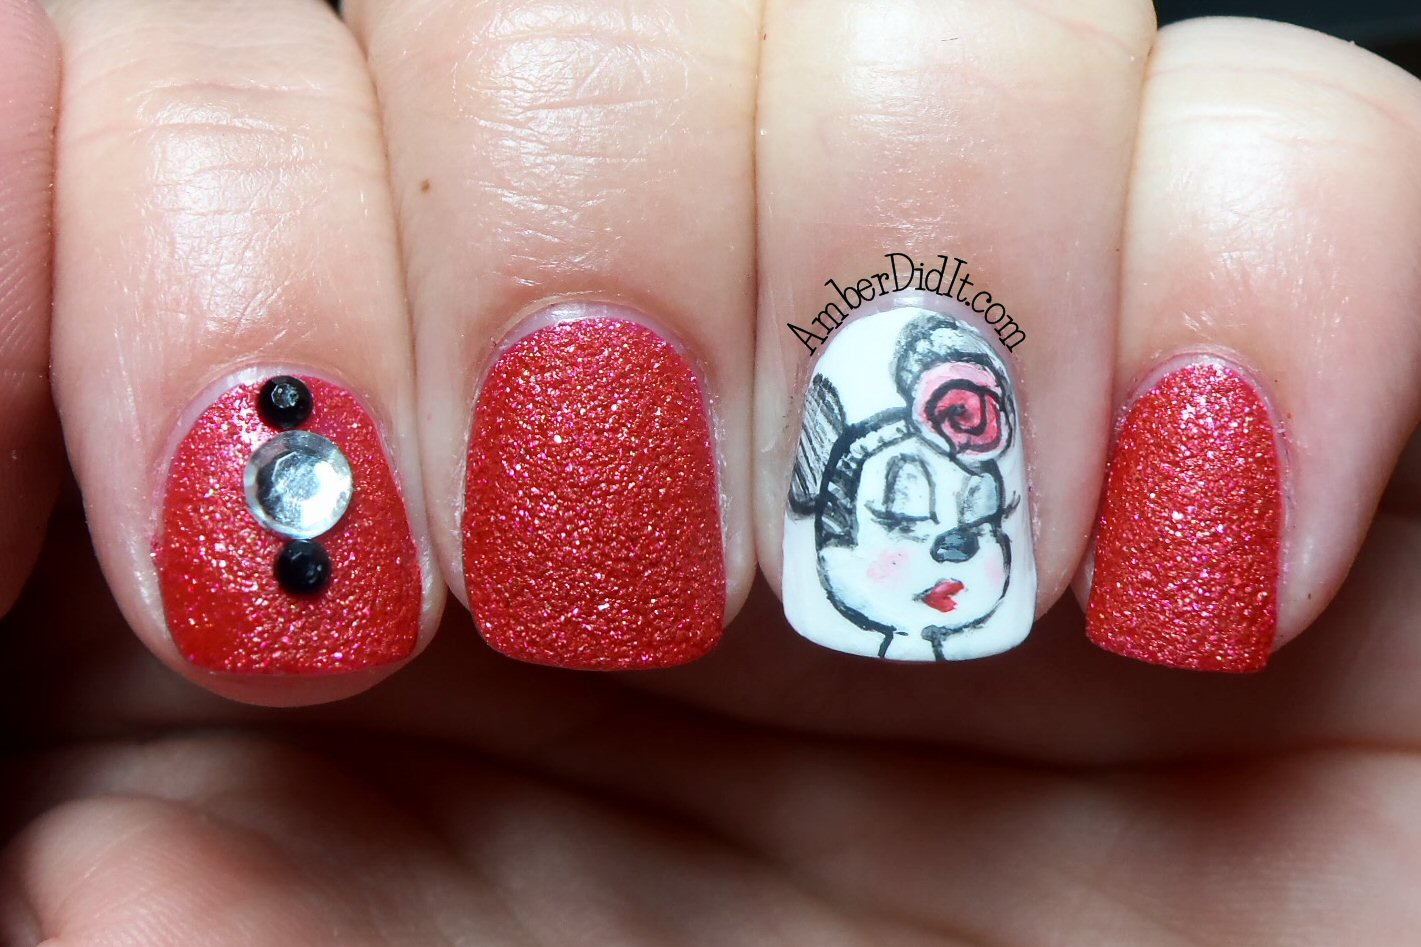 Amber did it!: OPI Magazine Cover Mouse and MInnie Nail Art